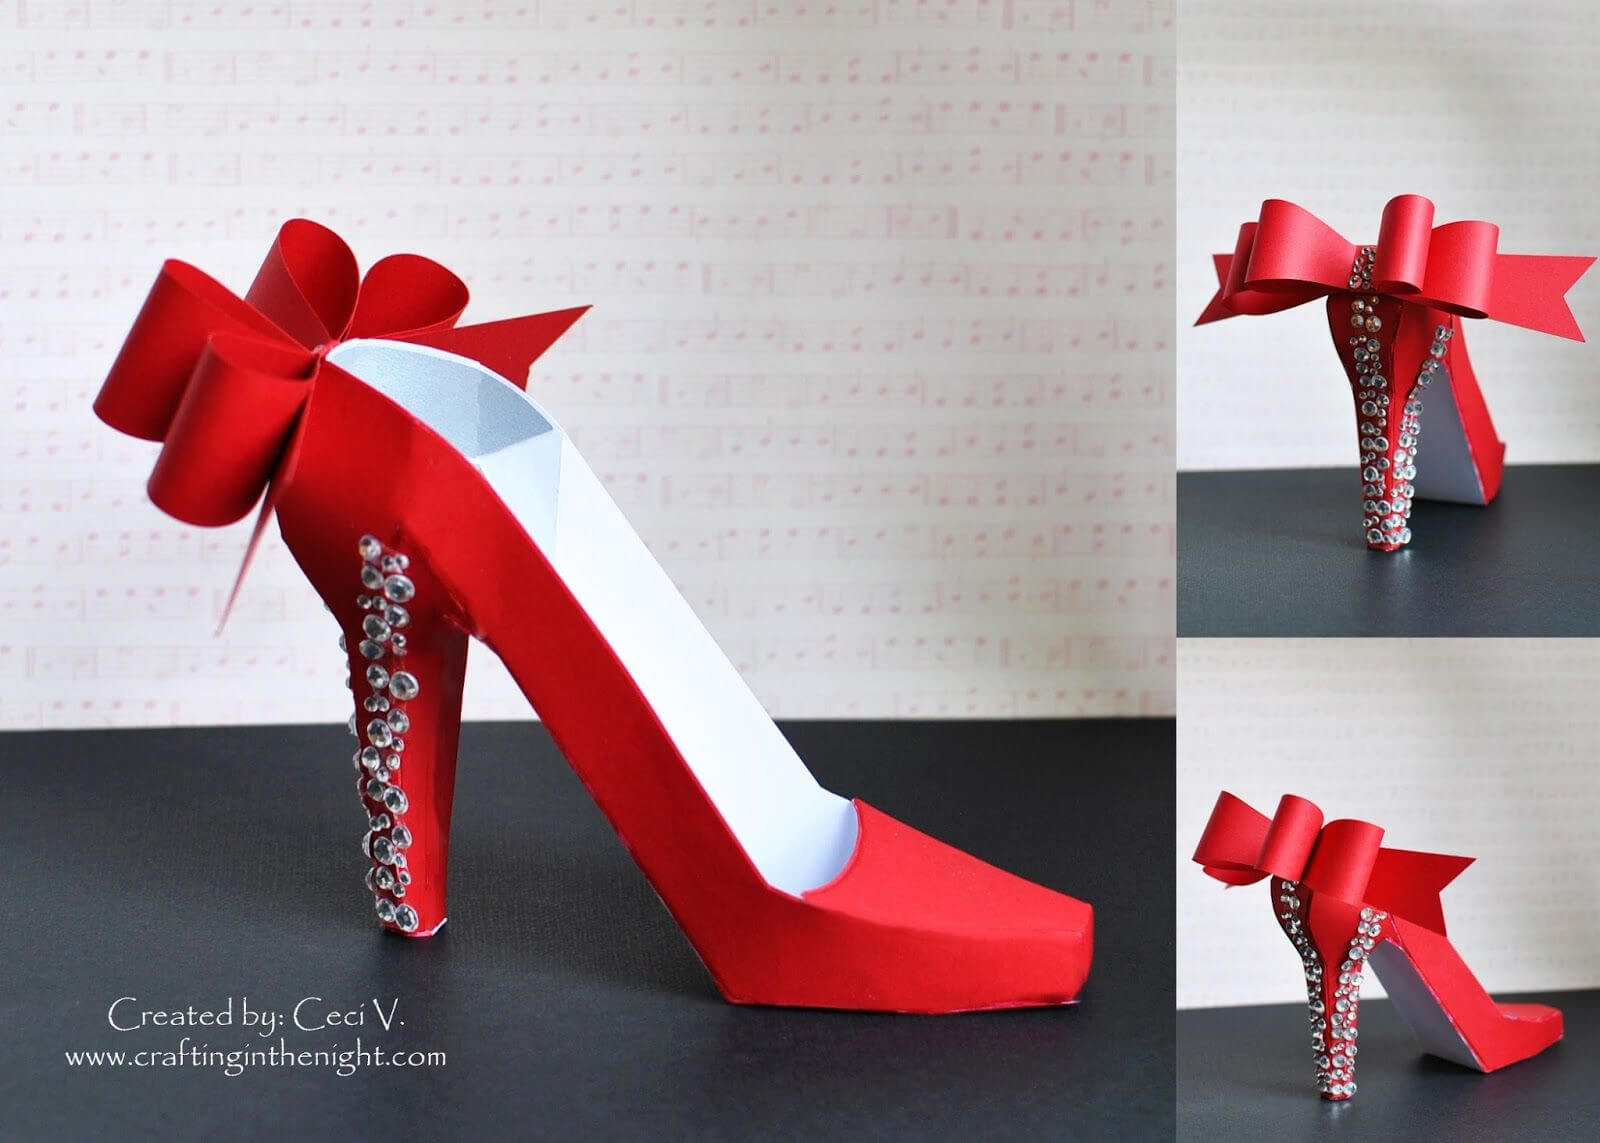 Crafting In The Night: 3D High Heel Shoe - Svgcuts in High Heel Shoe Template For Card